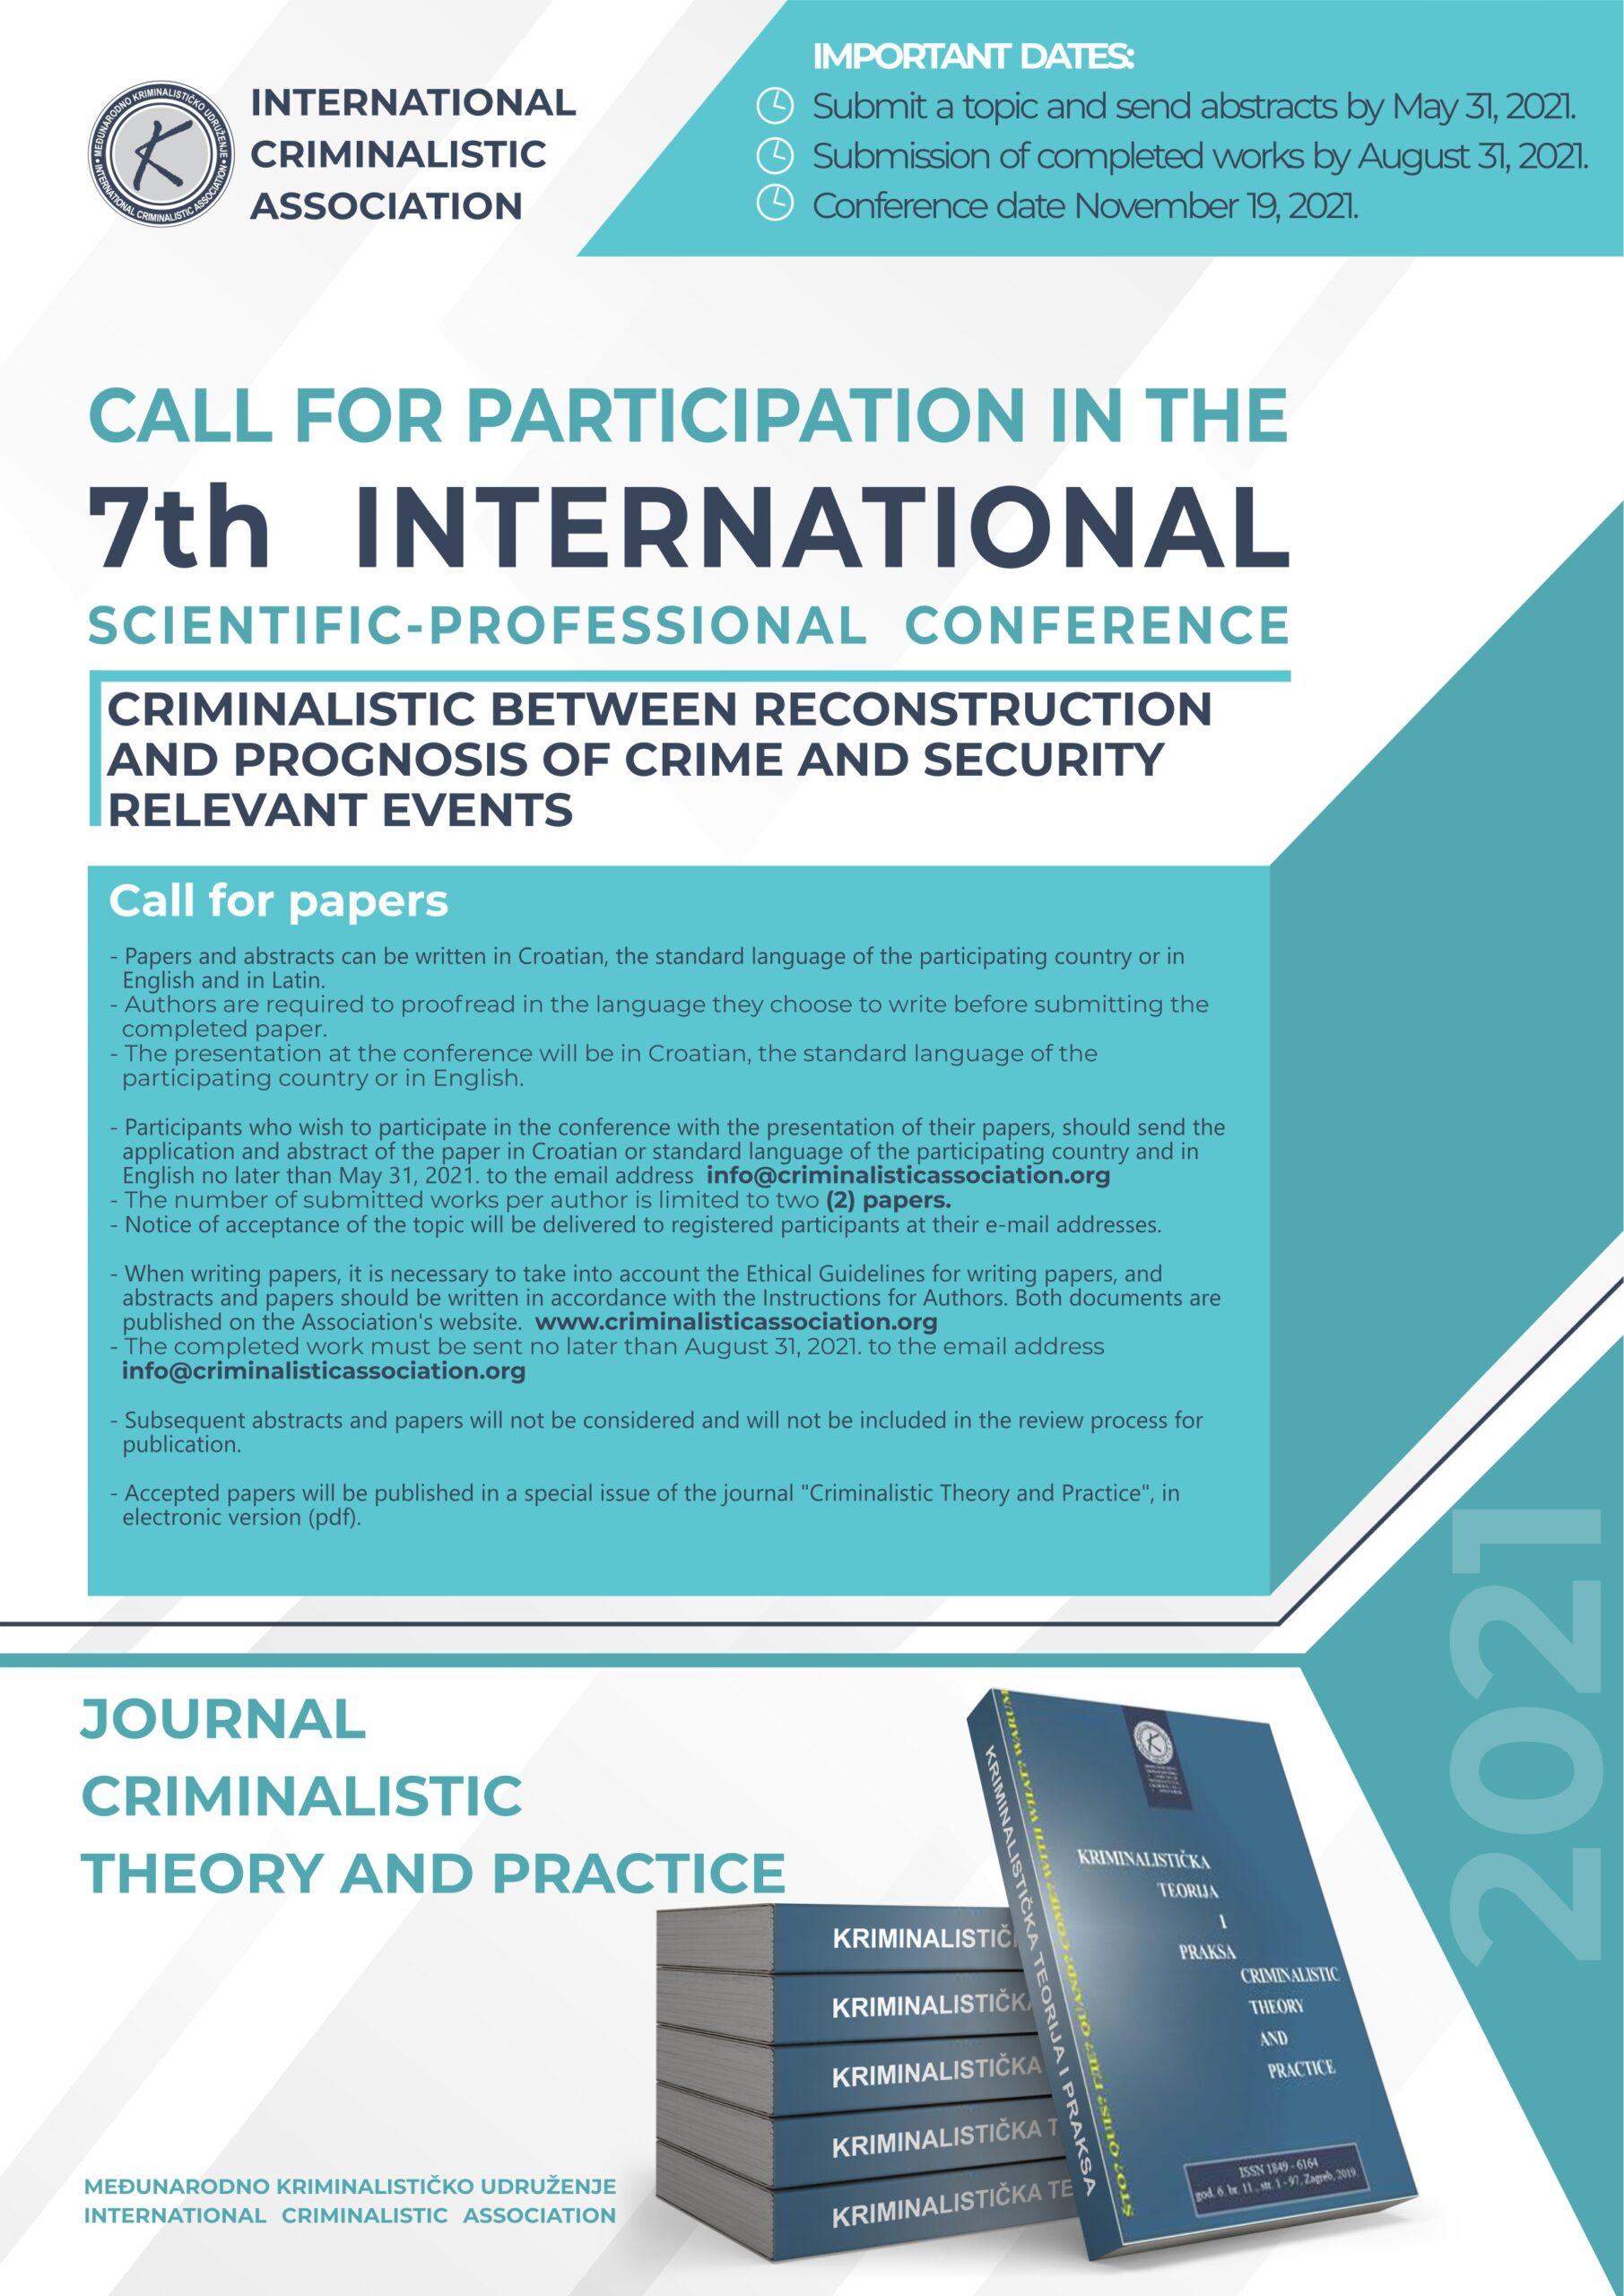 Call for participation in the 7th International Scientific-Professional Conference